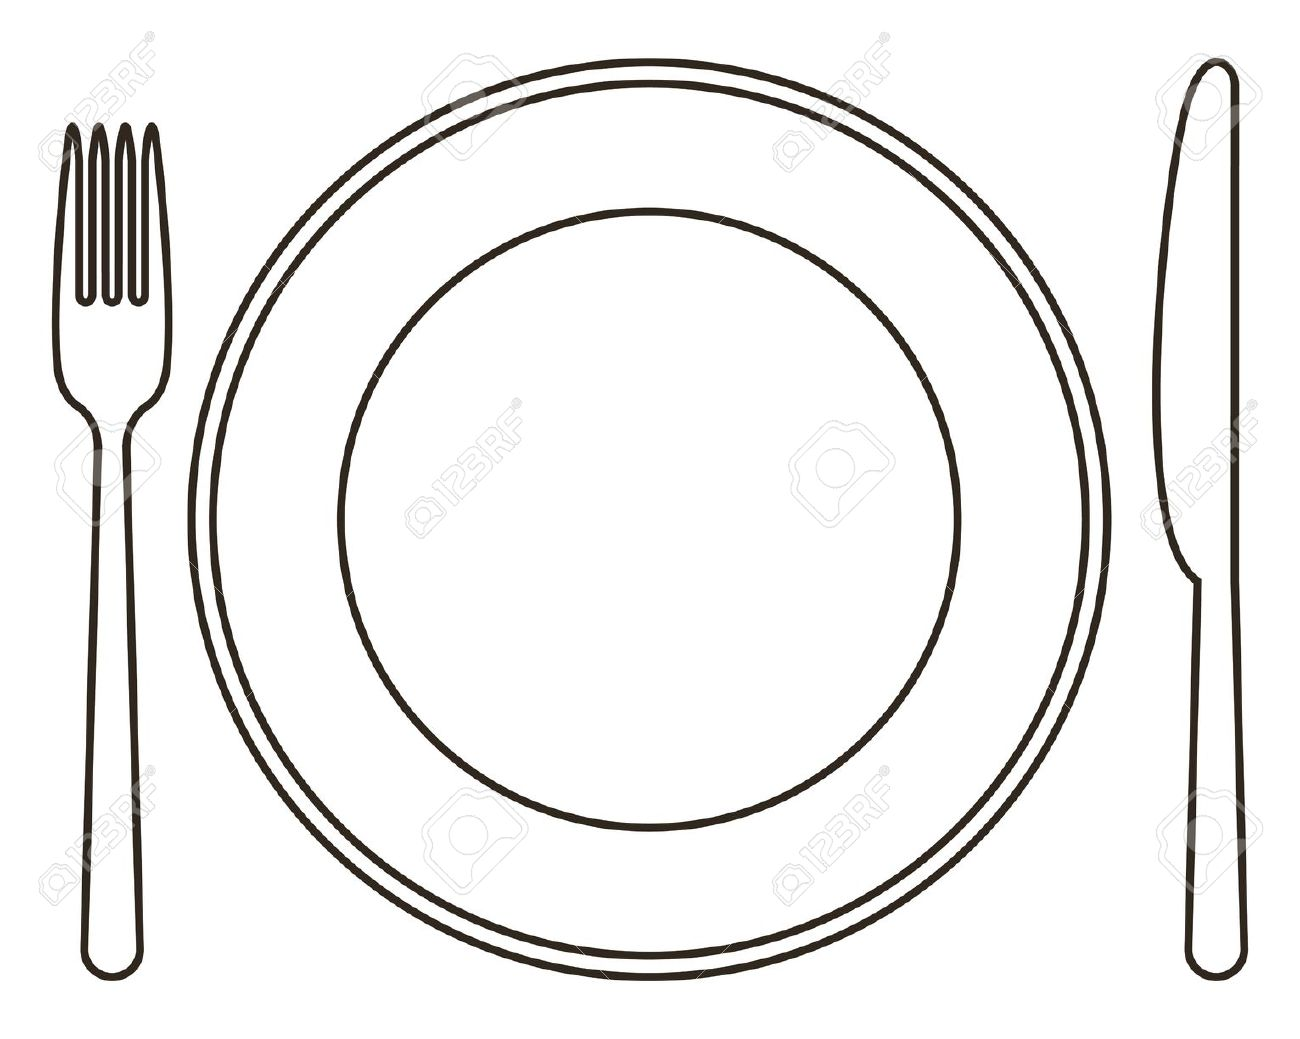 Plate and utensils clipart » Clipart Station.